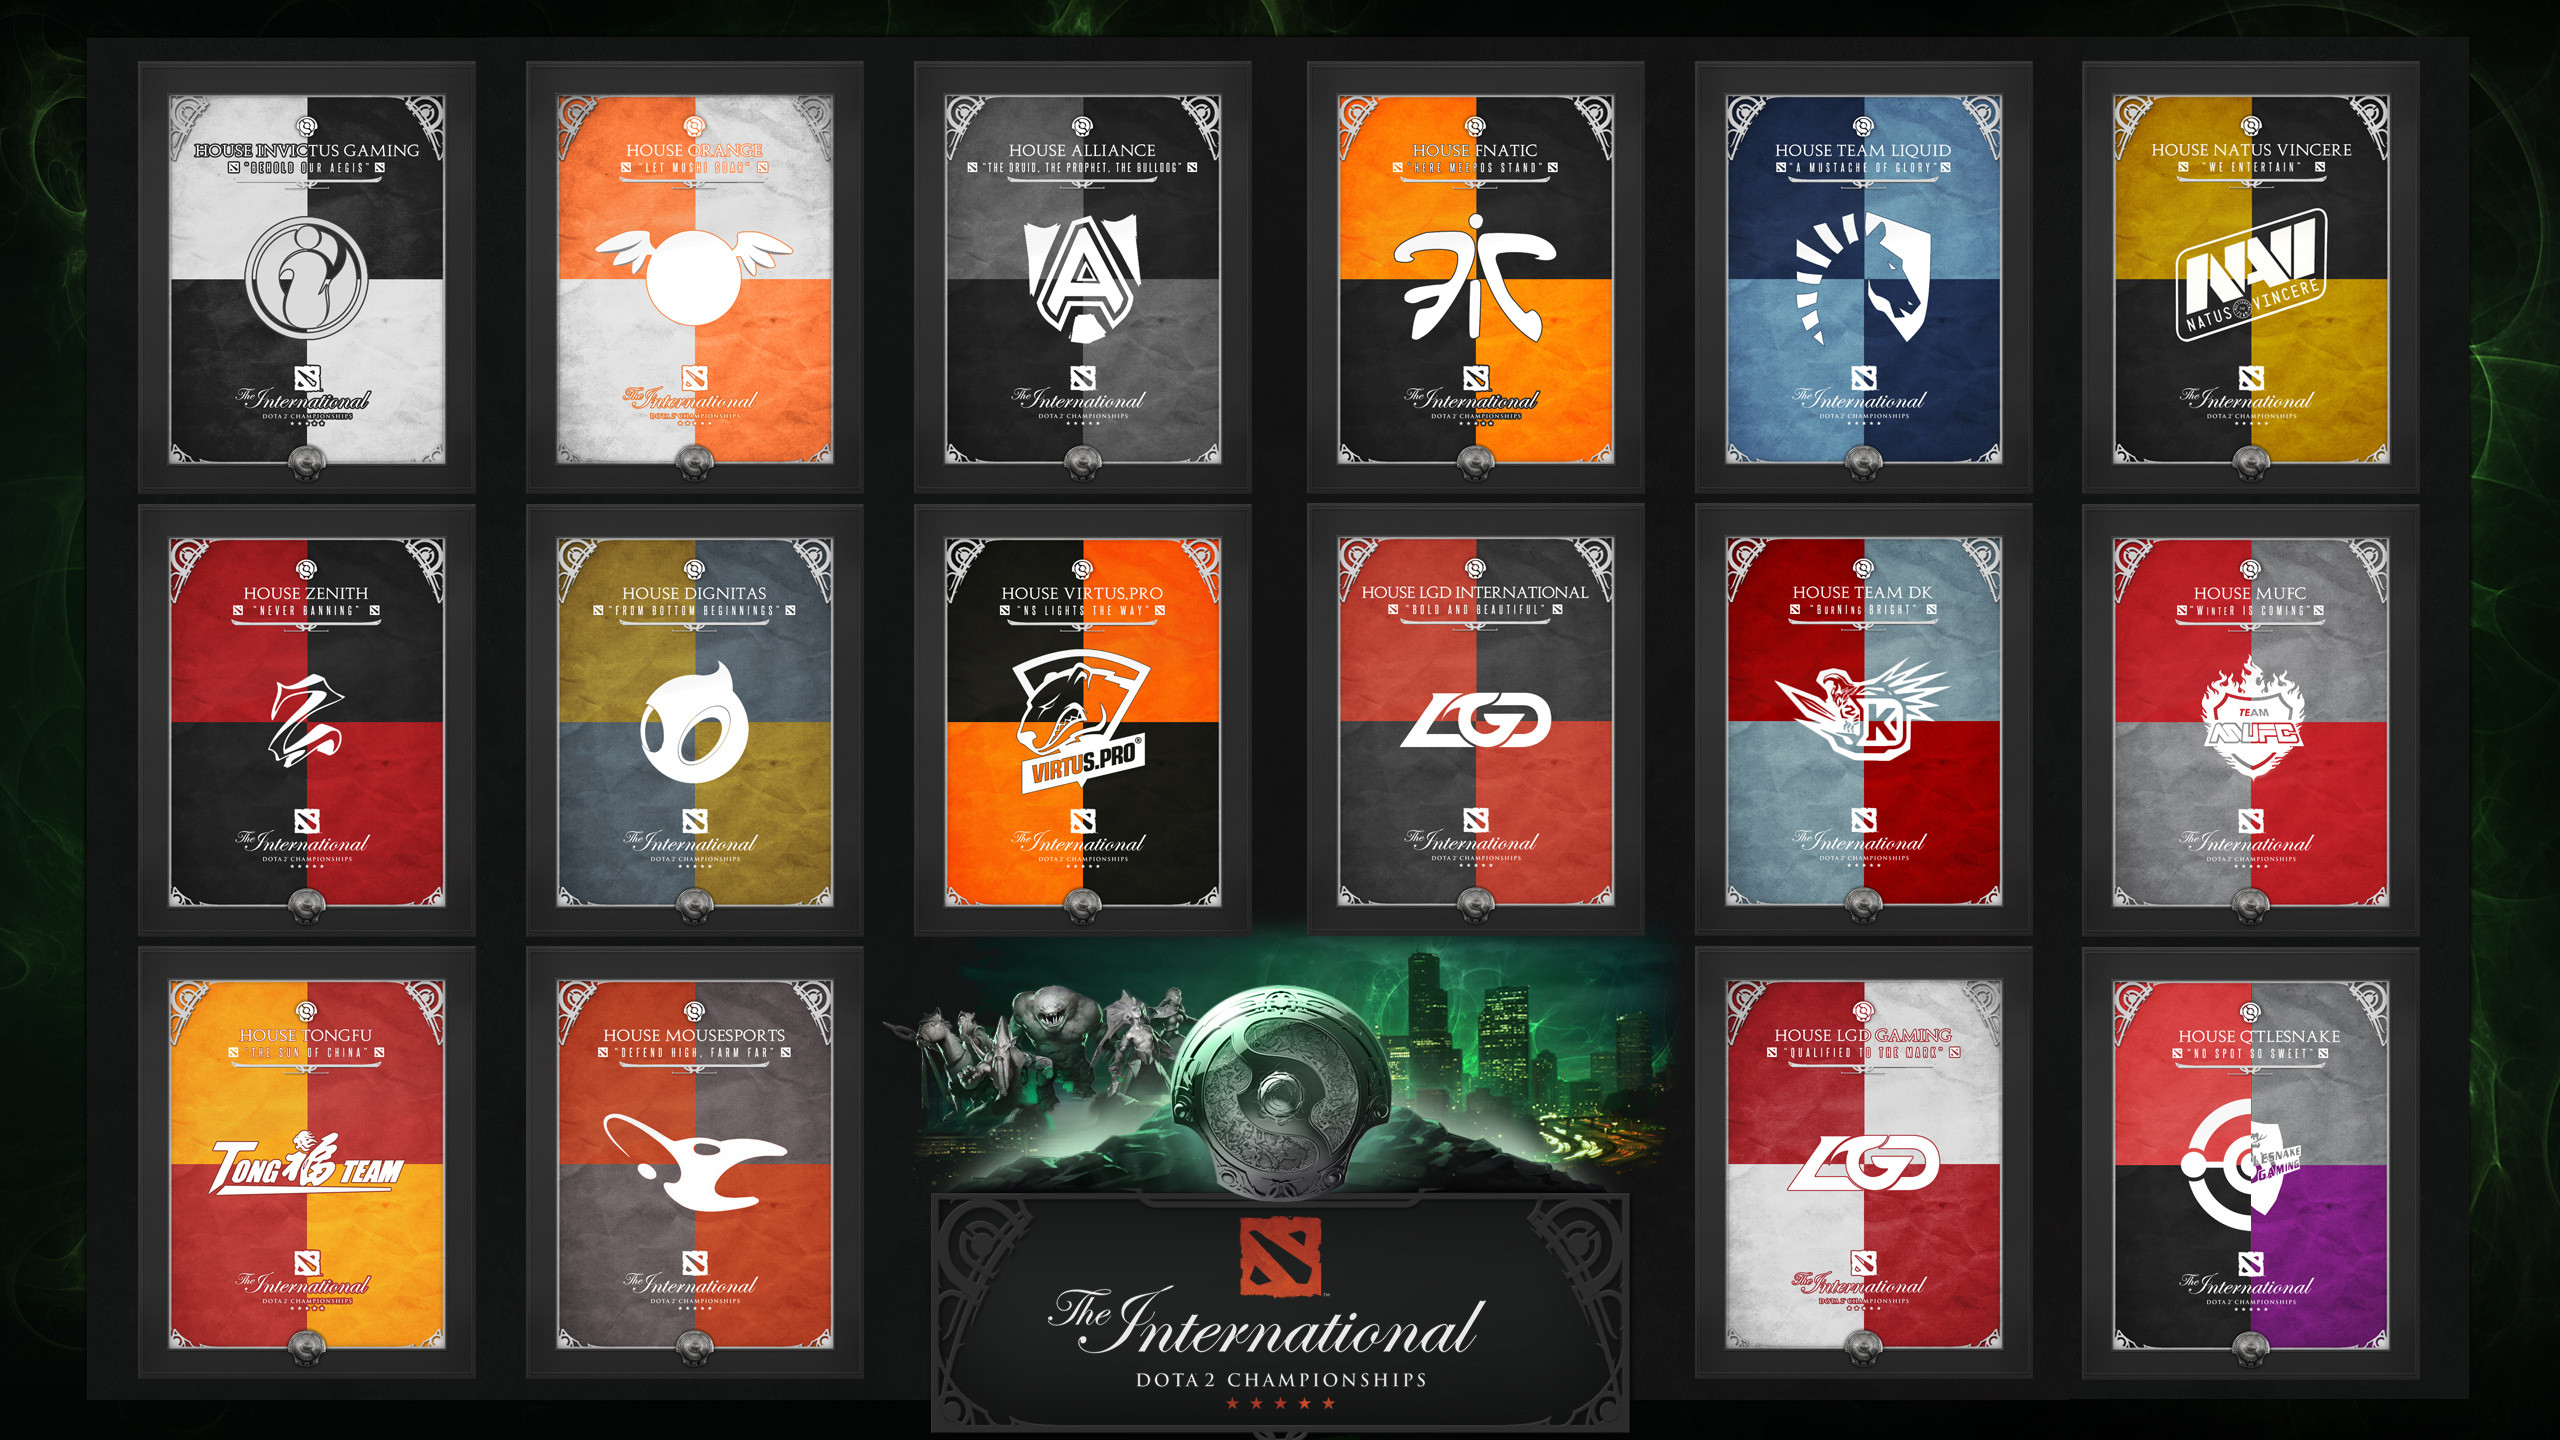 2560x1440 The International 3 Banners (Teams)